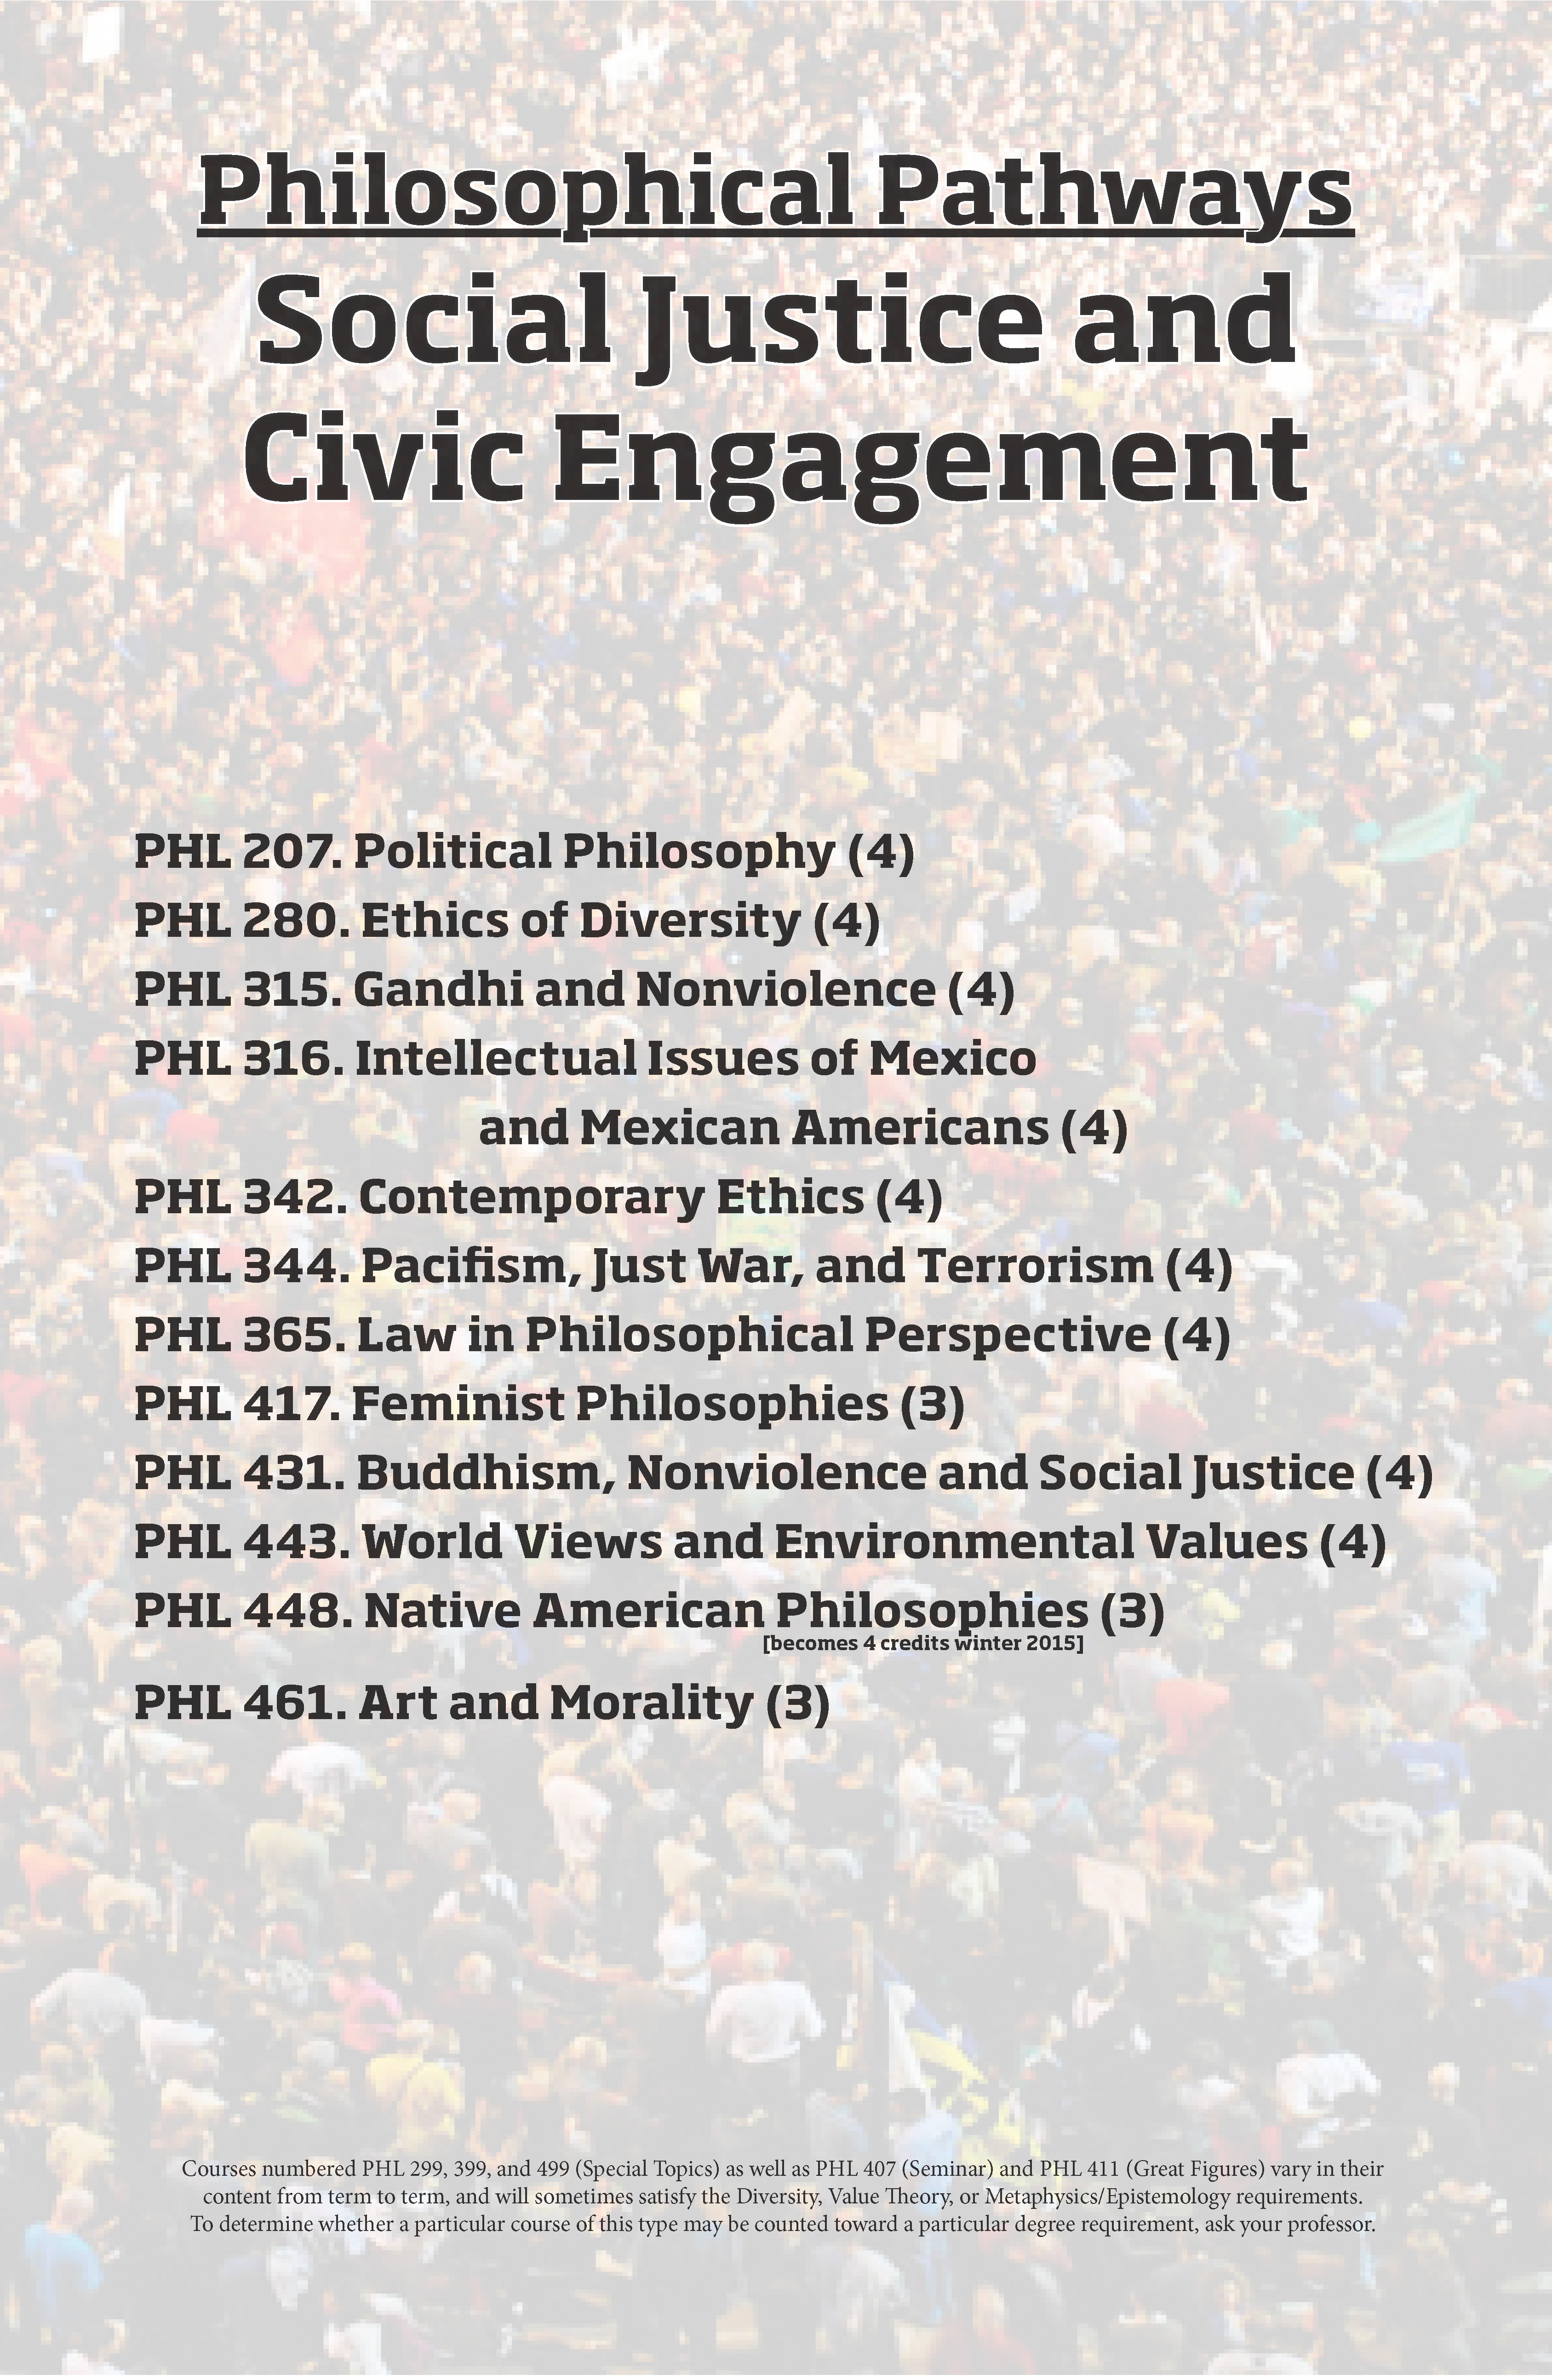 Social Justice and Civic Engagement